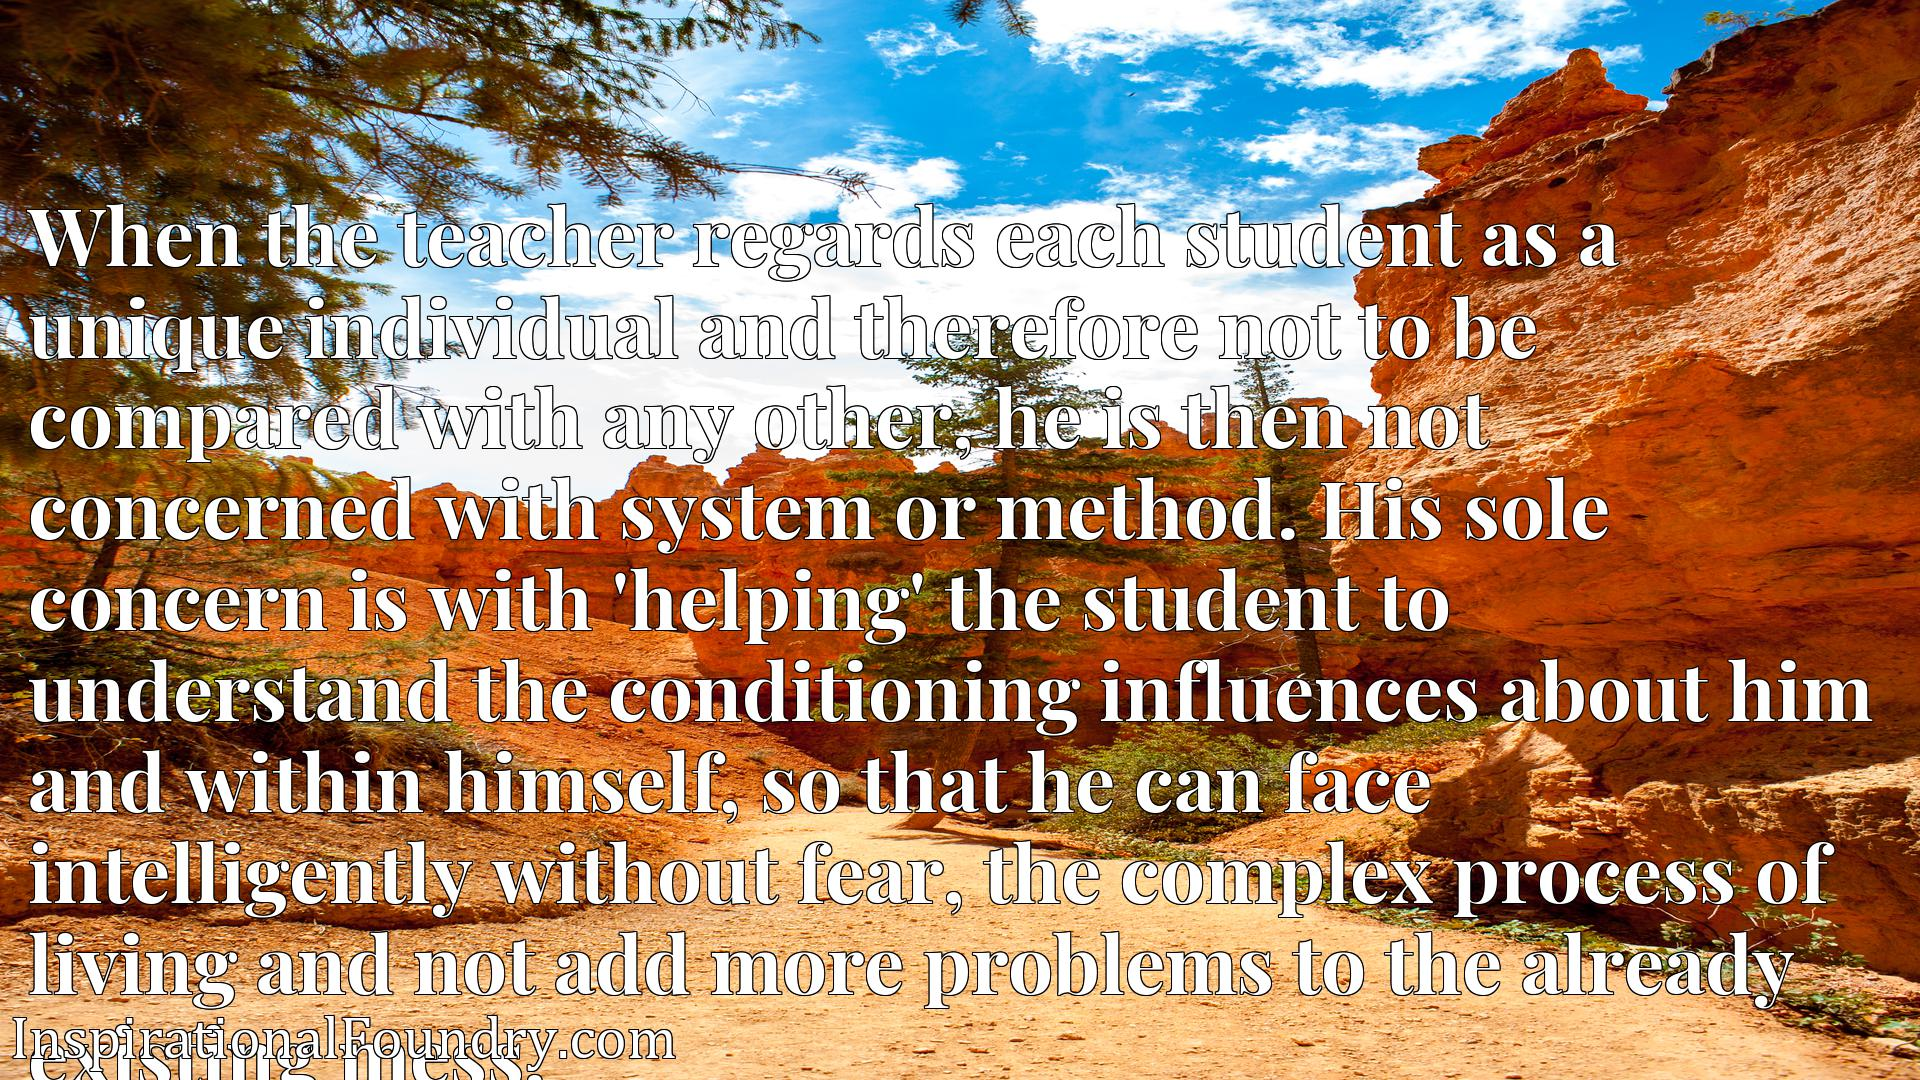 When the teacher regards each student as a unique individual and therefore not to be compared with any other, he is then not concerned with system or method. His sole concern is with 'helping' the student to understand the conditioning influences about him and within himself, so that he can face intelligently without fear, the complex process of living and not add more problems to the already existing mess.